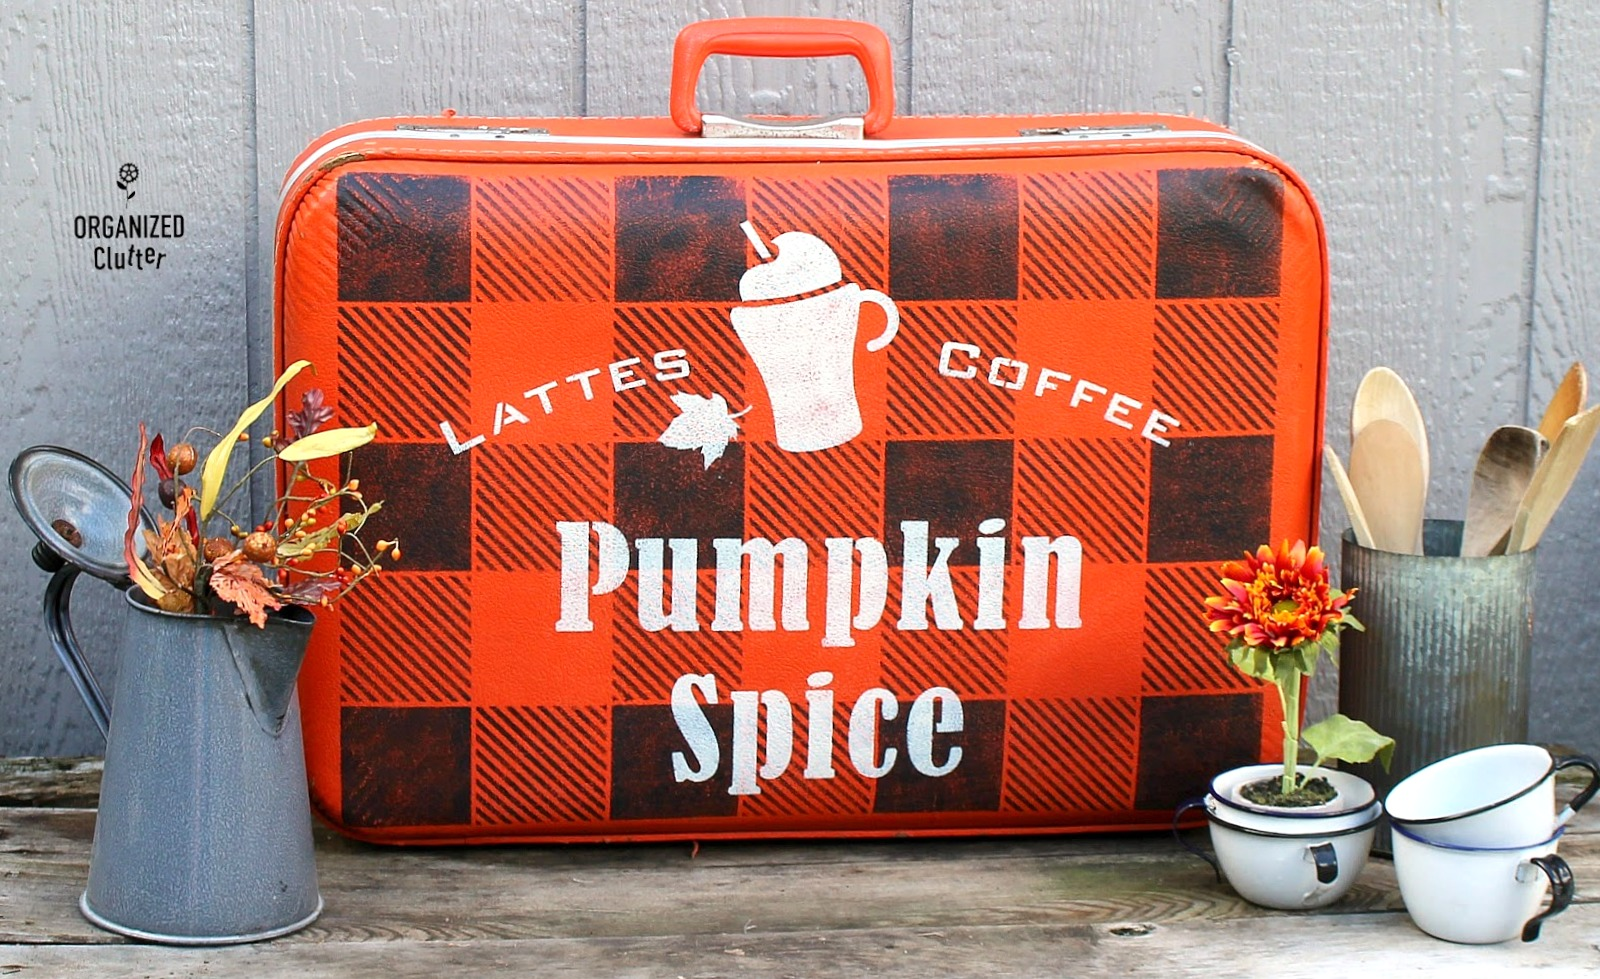 Vintage suitcase Pumpkin Spice fall sign by Organized Clutter, featured on Funky Junk Interiors